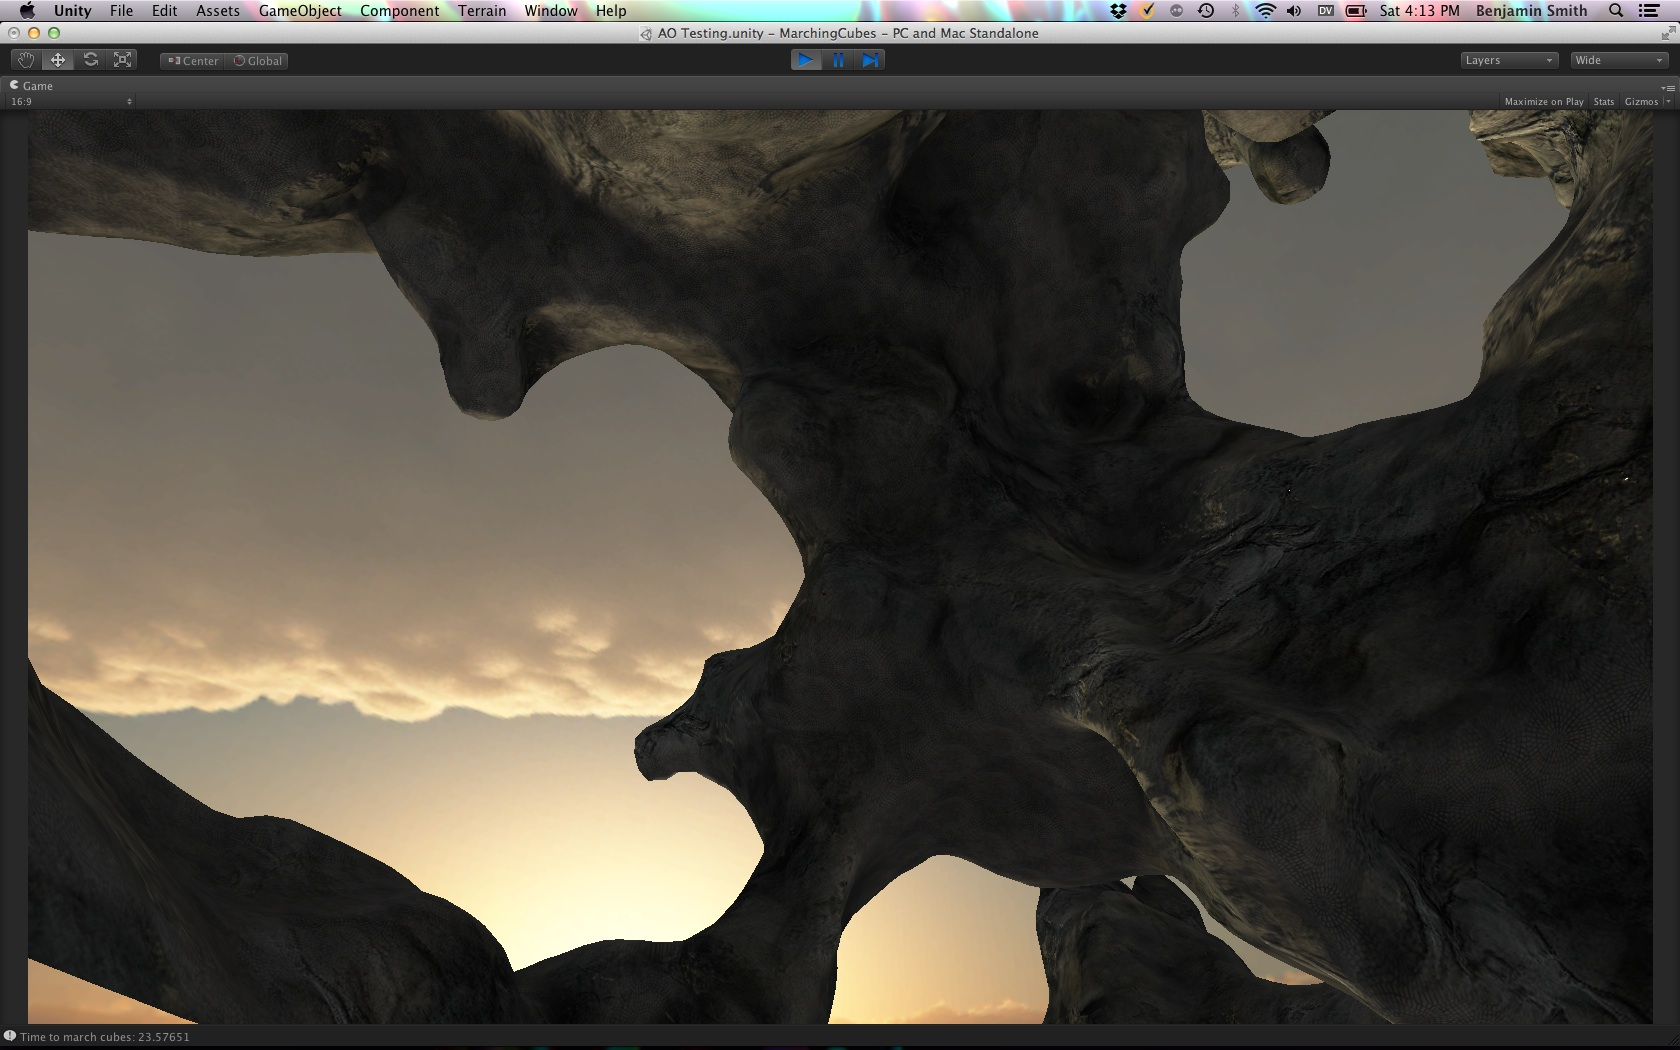 Voxel tools: unreal landscape, shaders, meltable ice, trees